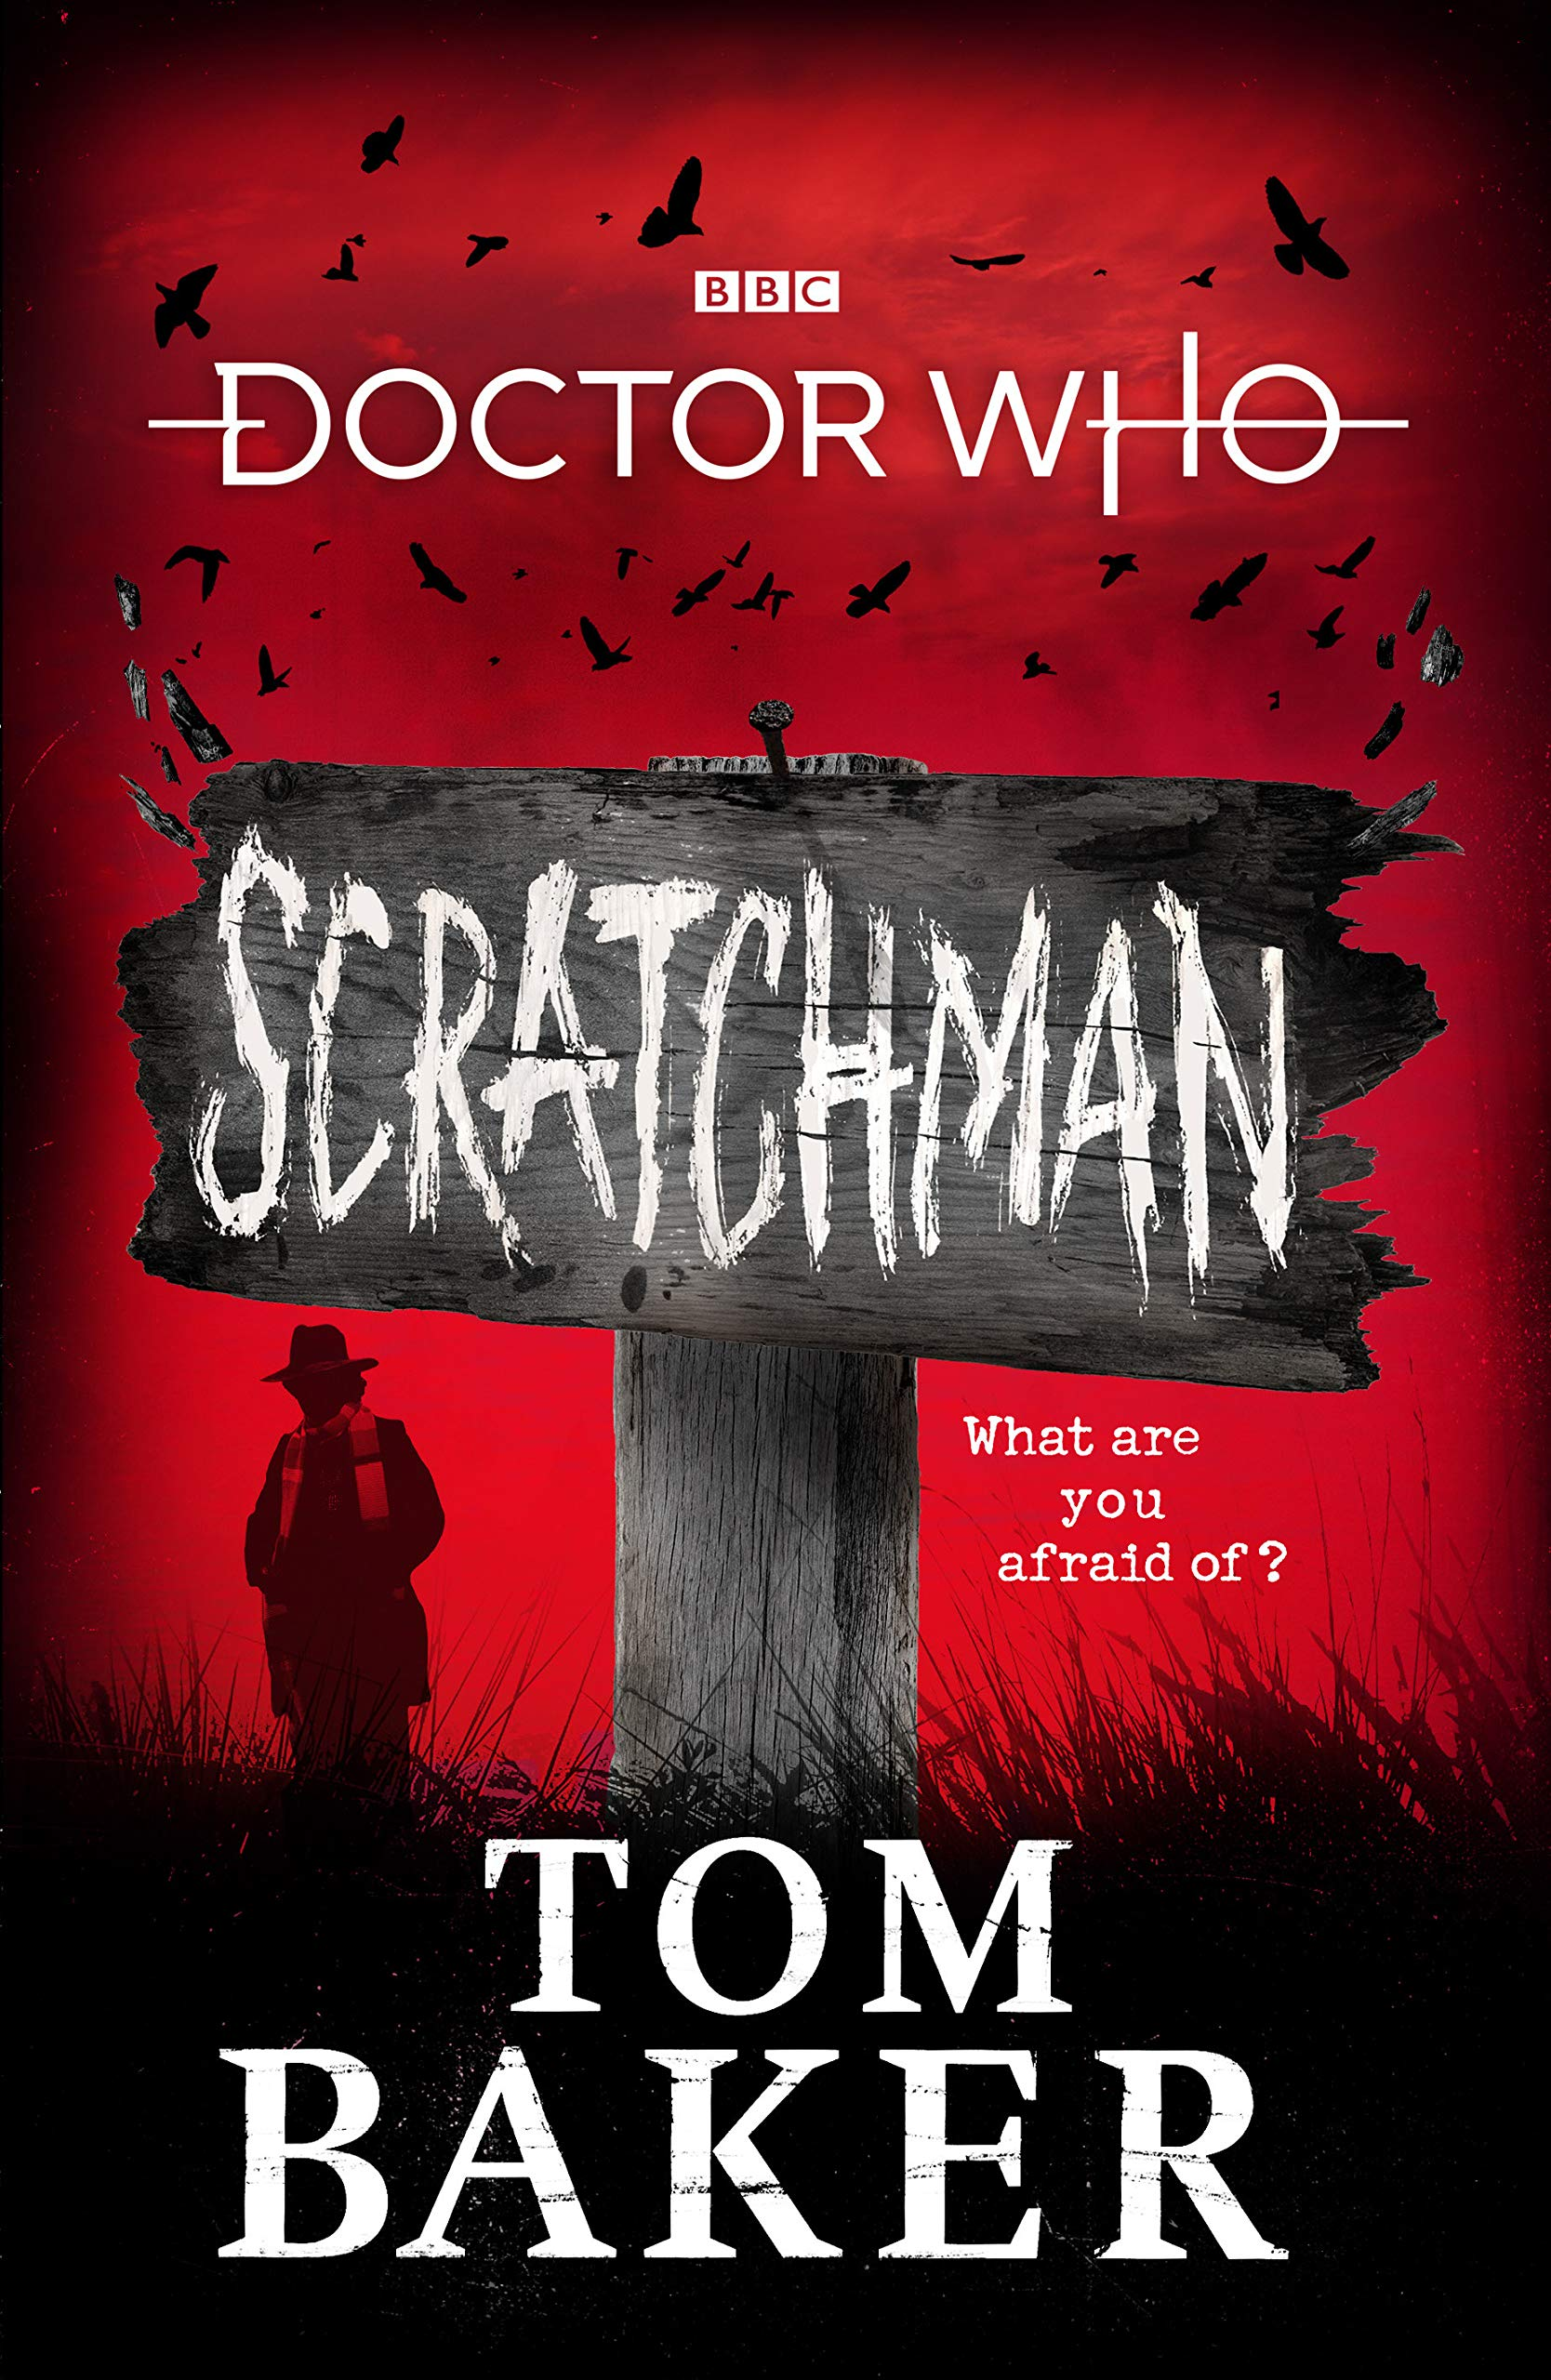 Doctor Who: Scratchman by Tom Baker with James Goss